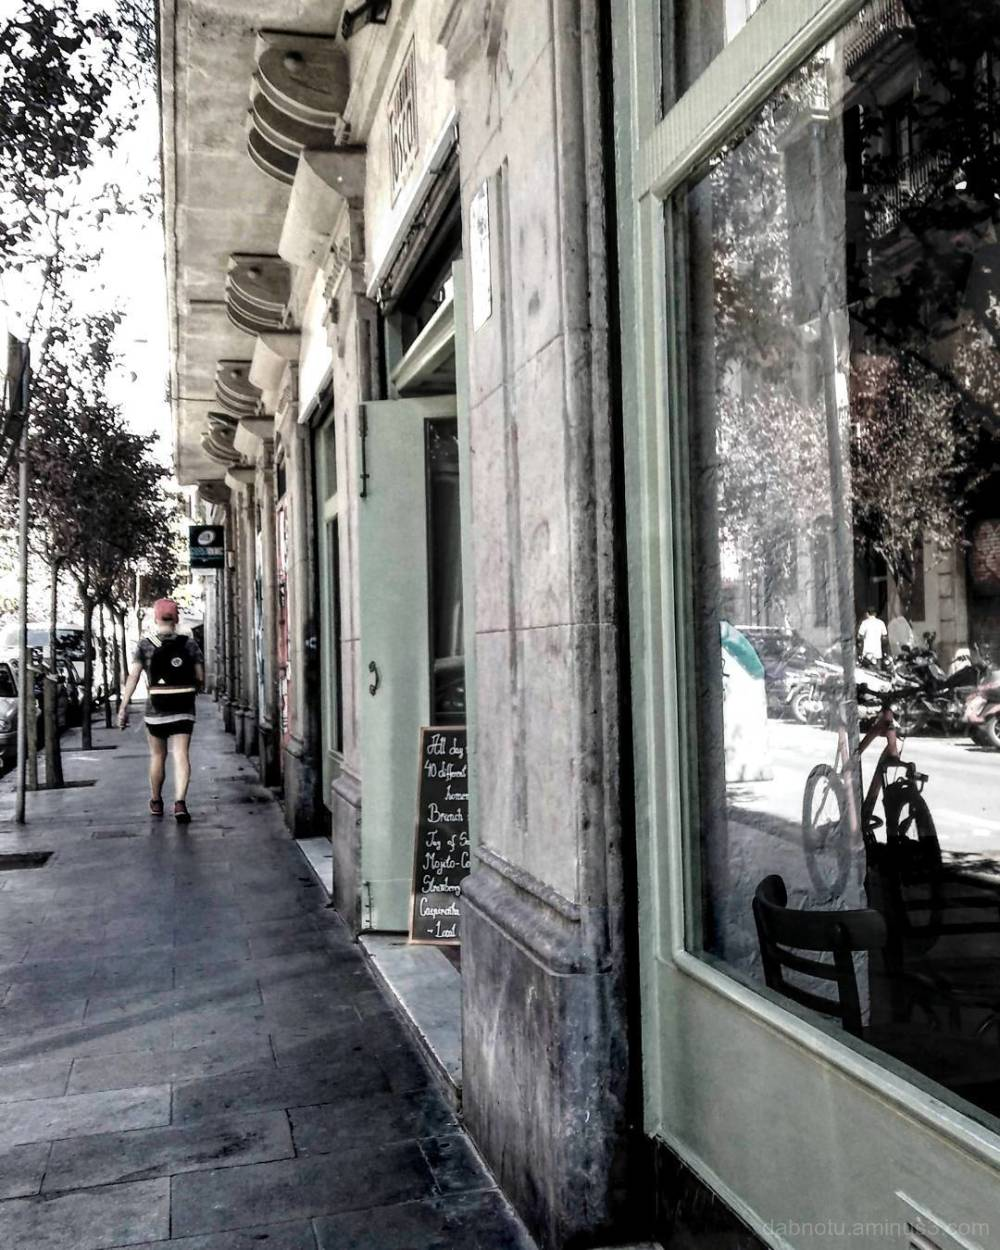 Barcelona edited smart / street photography.